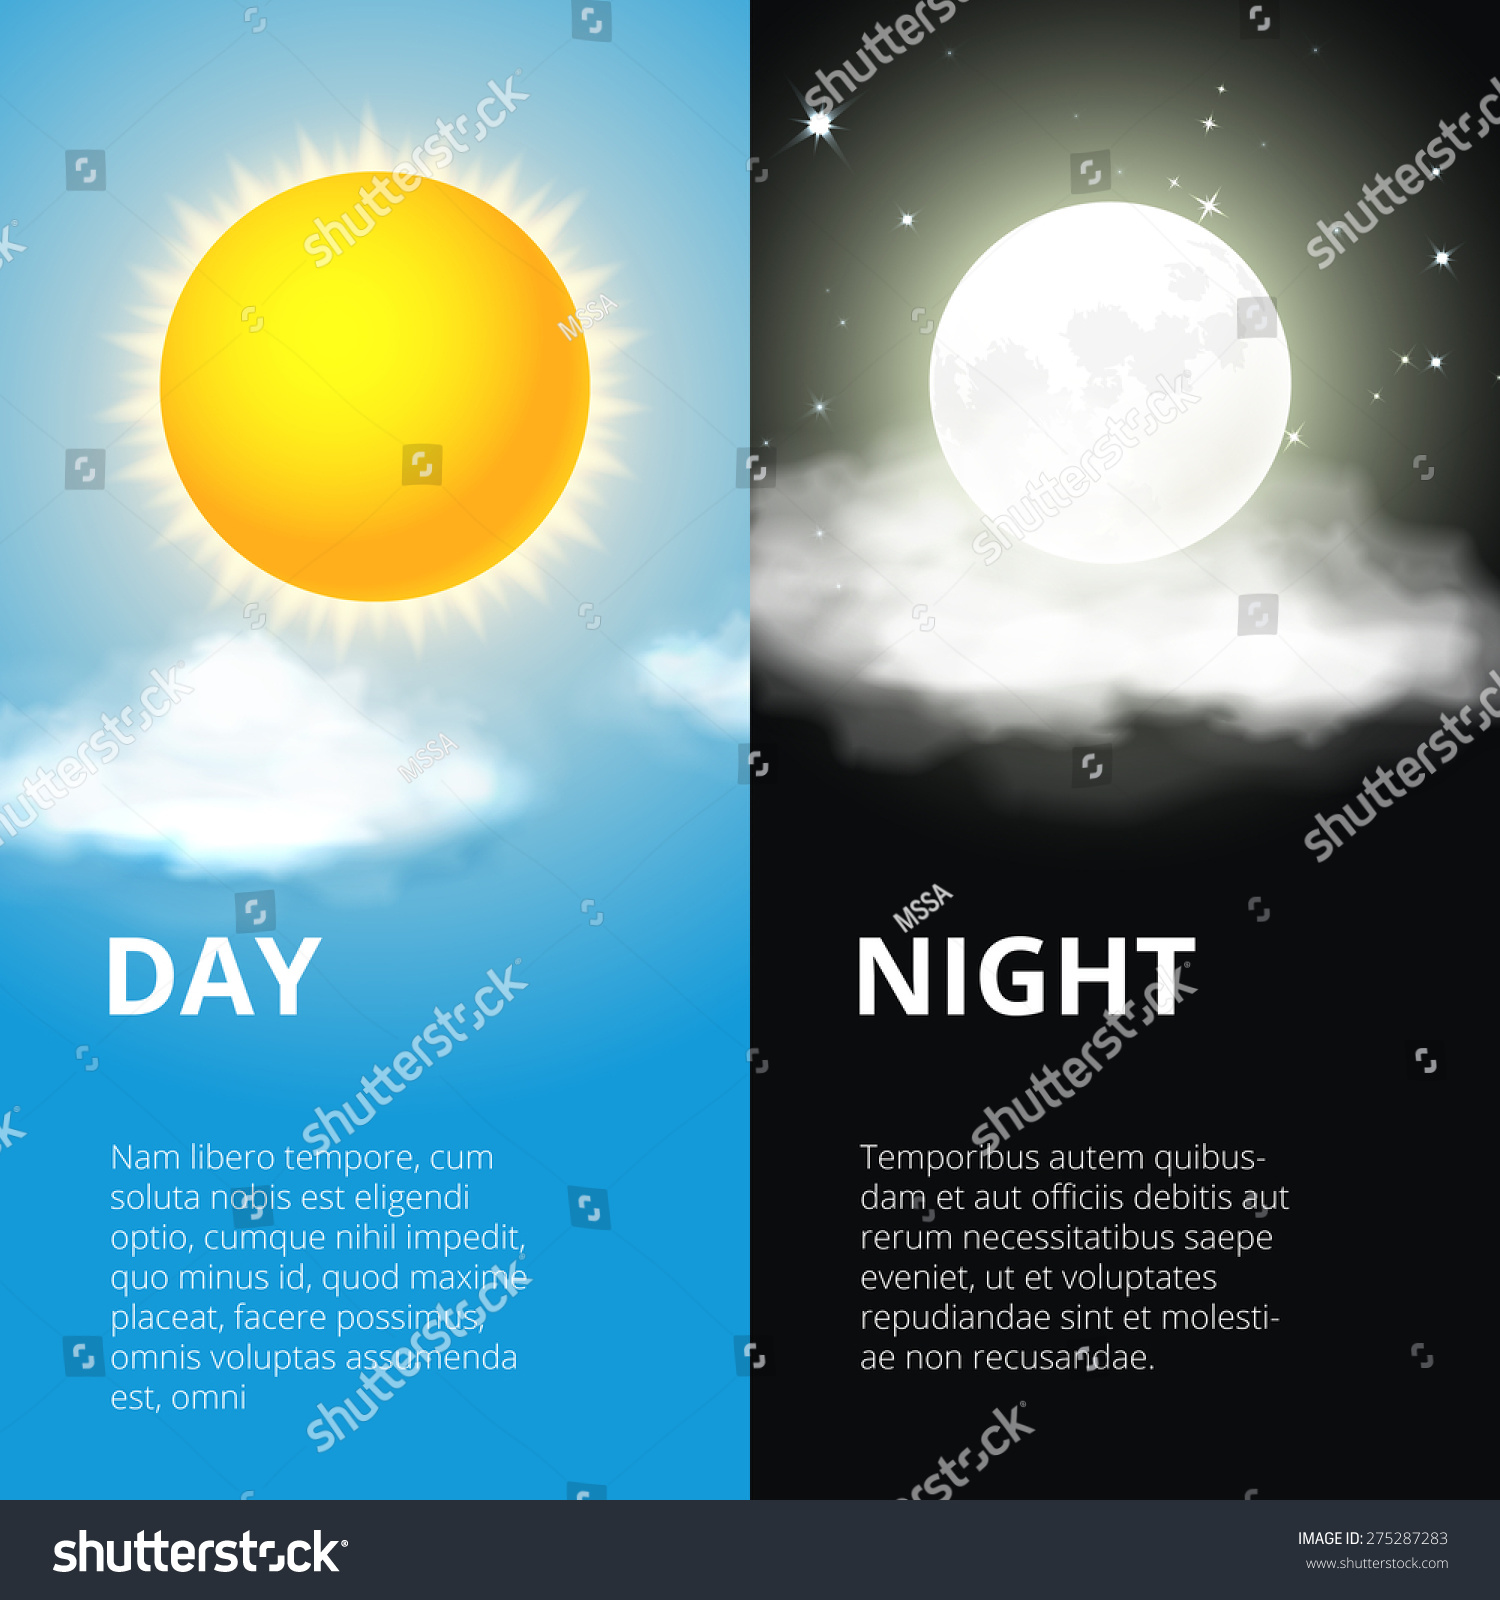 day night sun moon sky weather stock vector 275287283 shutterstock. Black Bedroom Furniture Sets. Home Design Ideas